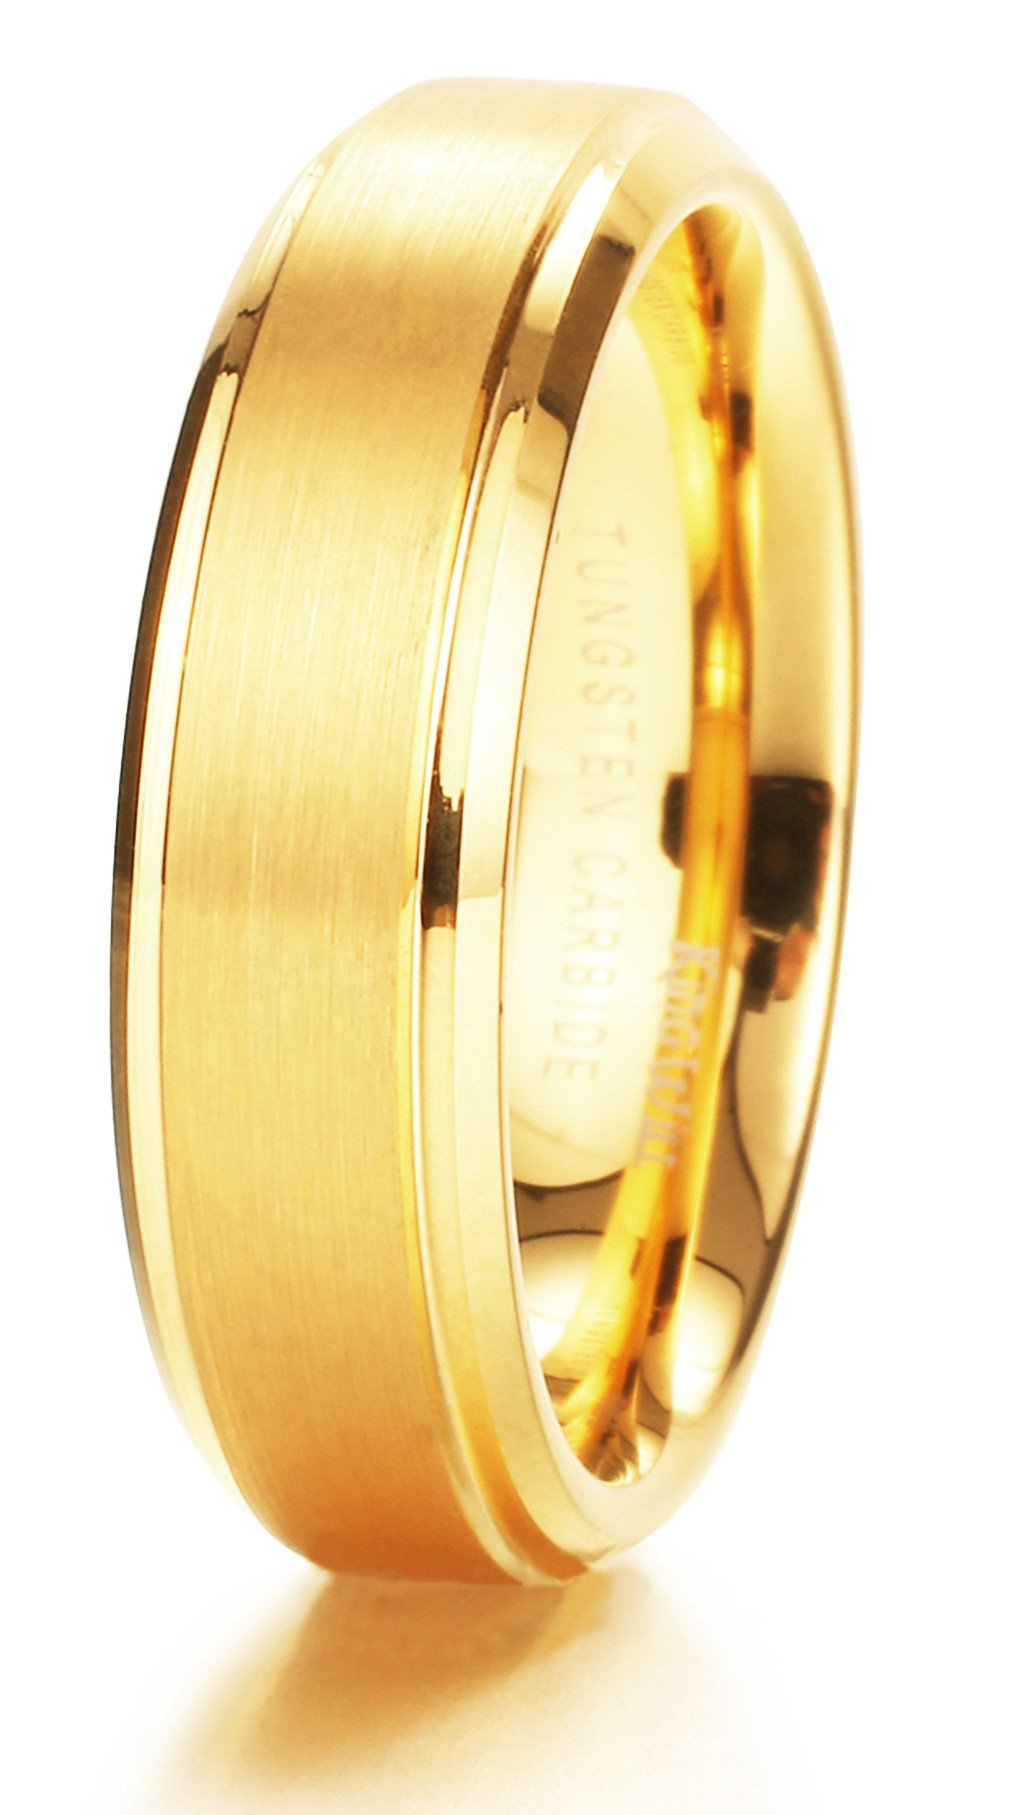 King Will Glory Womens Mens 6mm Matte Brushed Tungsten Carbide Ring 14K Yellow Gold Wedding Band Comfort Fit 9.5